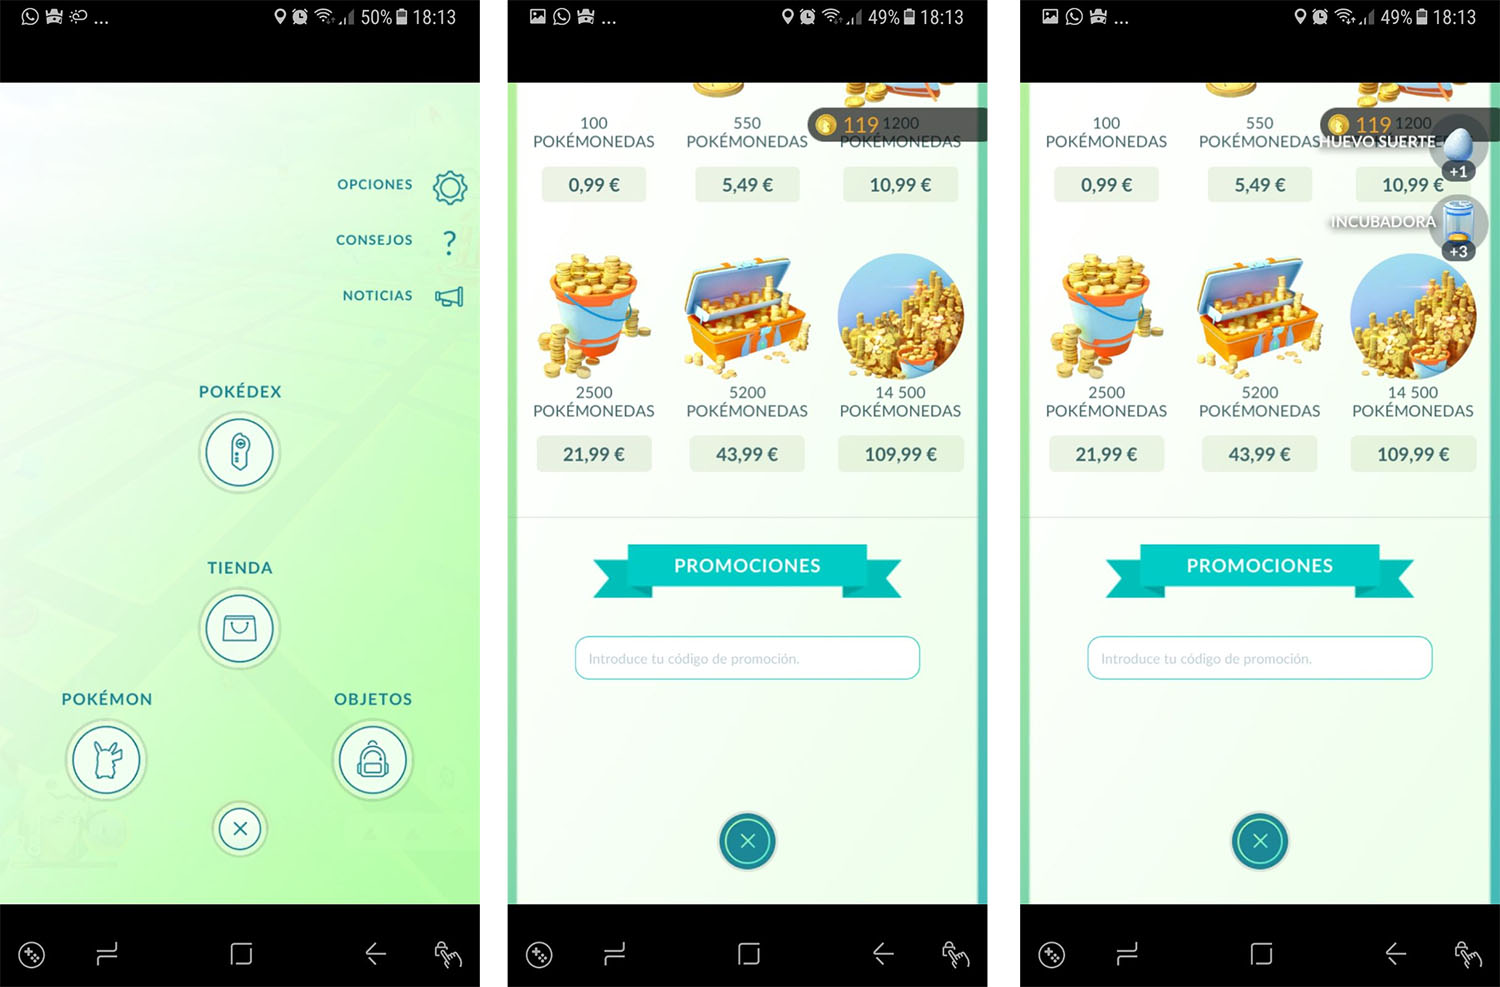 Pokémon GO beneficios